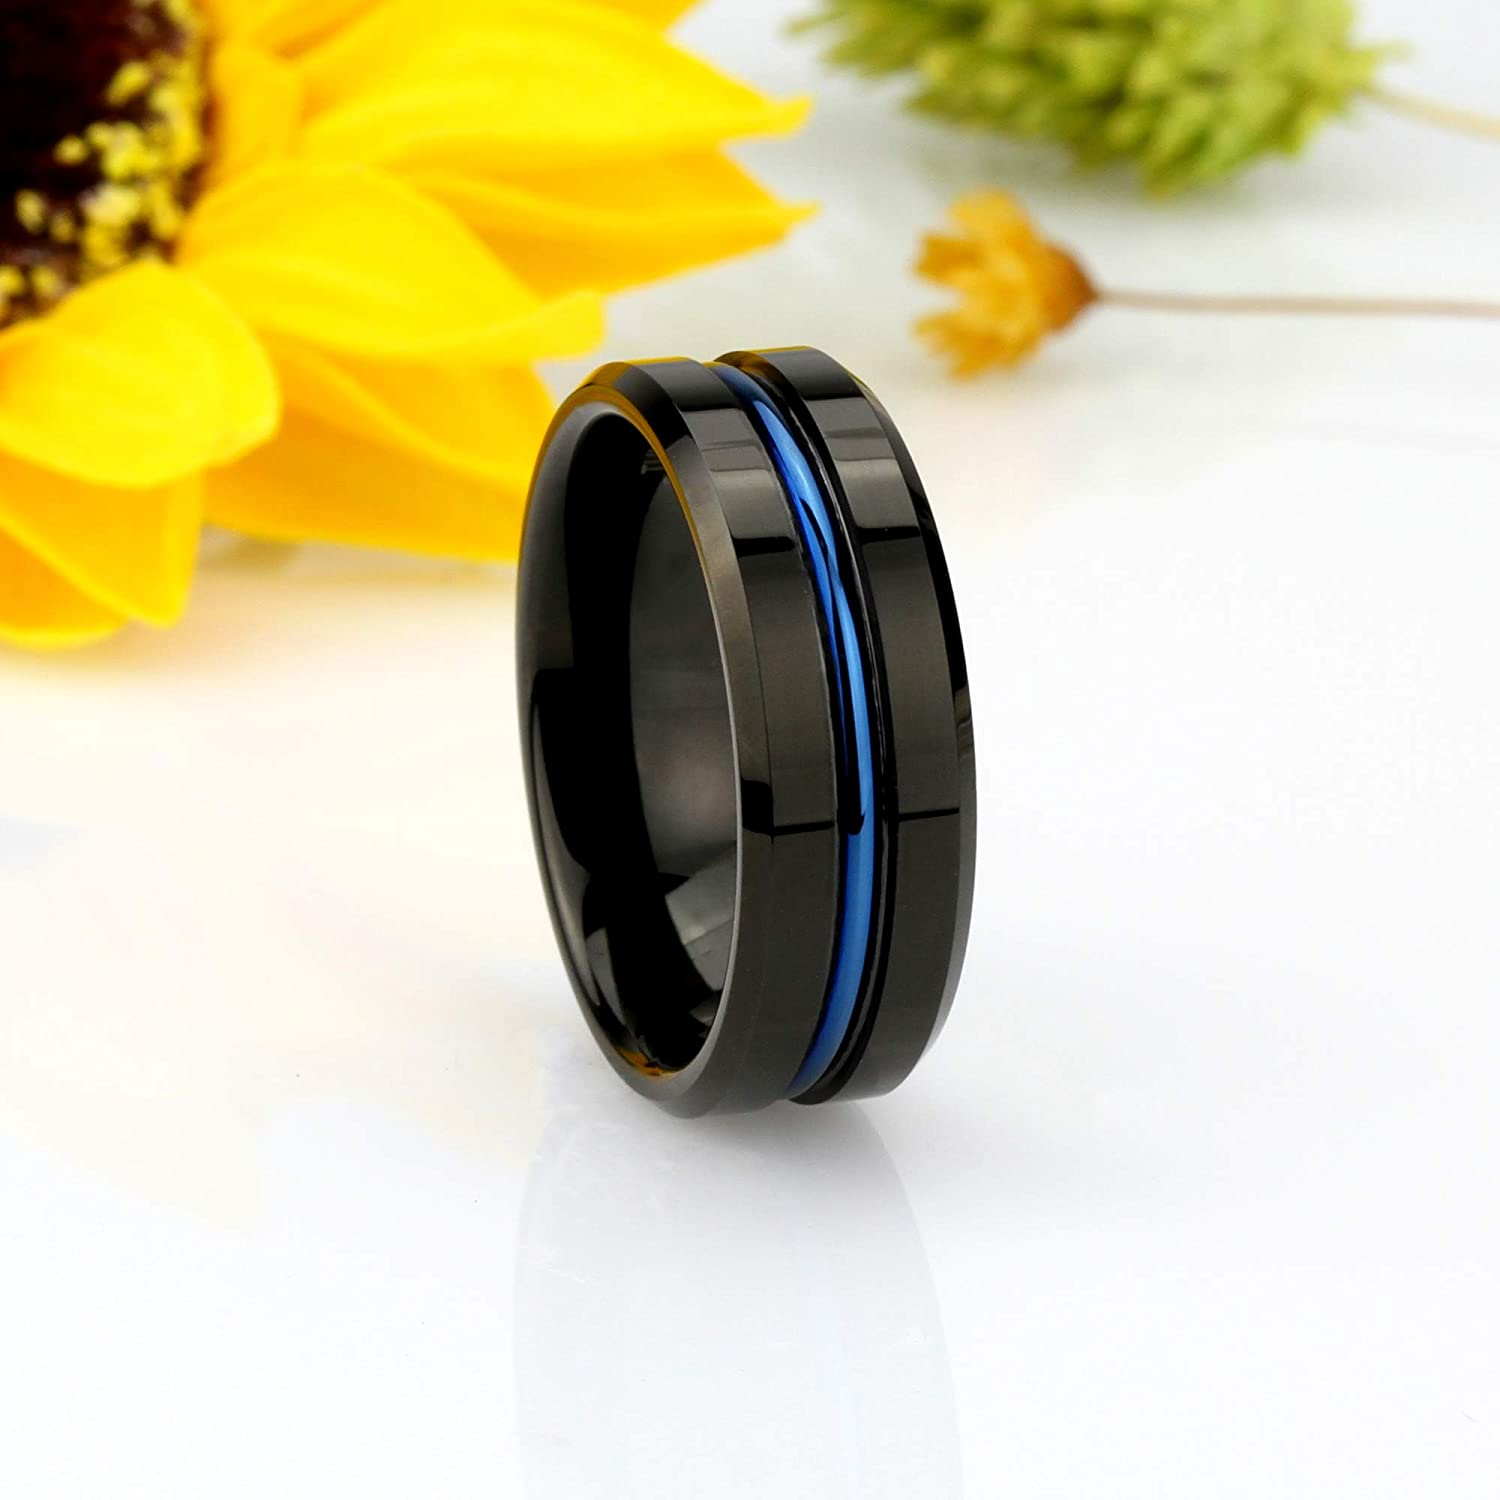 7 to 15 Double Accent 8MM Comfort Fit Tungsten Carbide Wedding Band Beveled Edge Blue IP Grooved Black Tungsten Ring